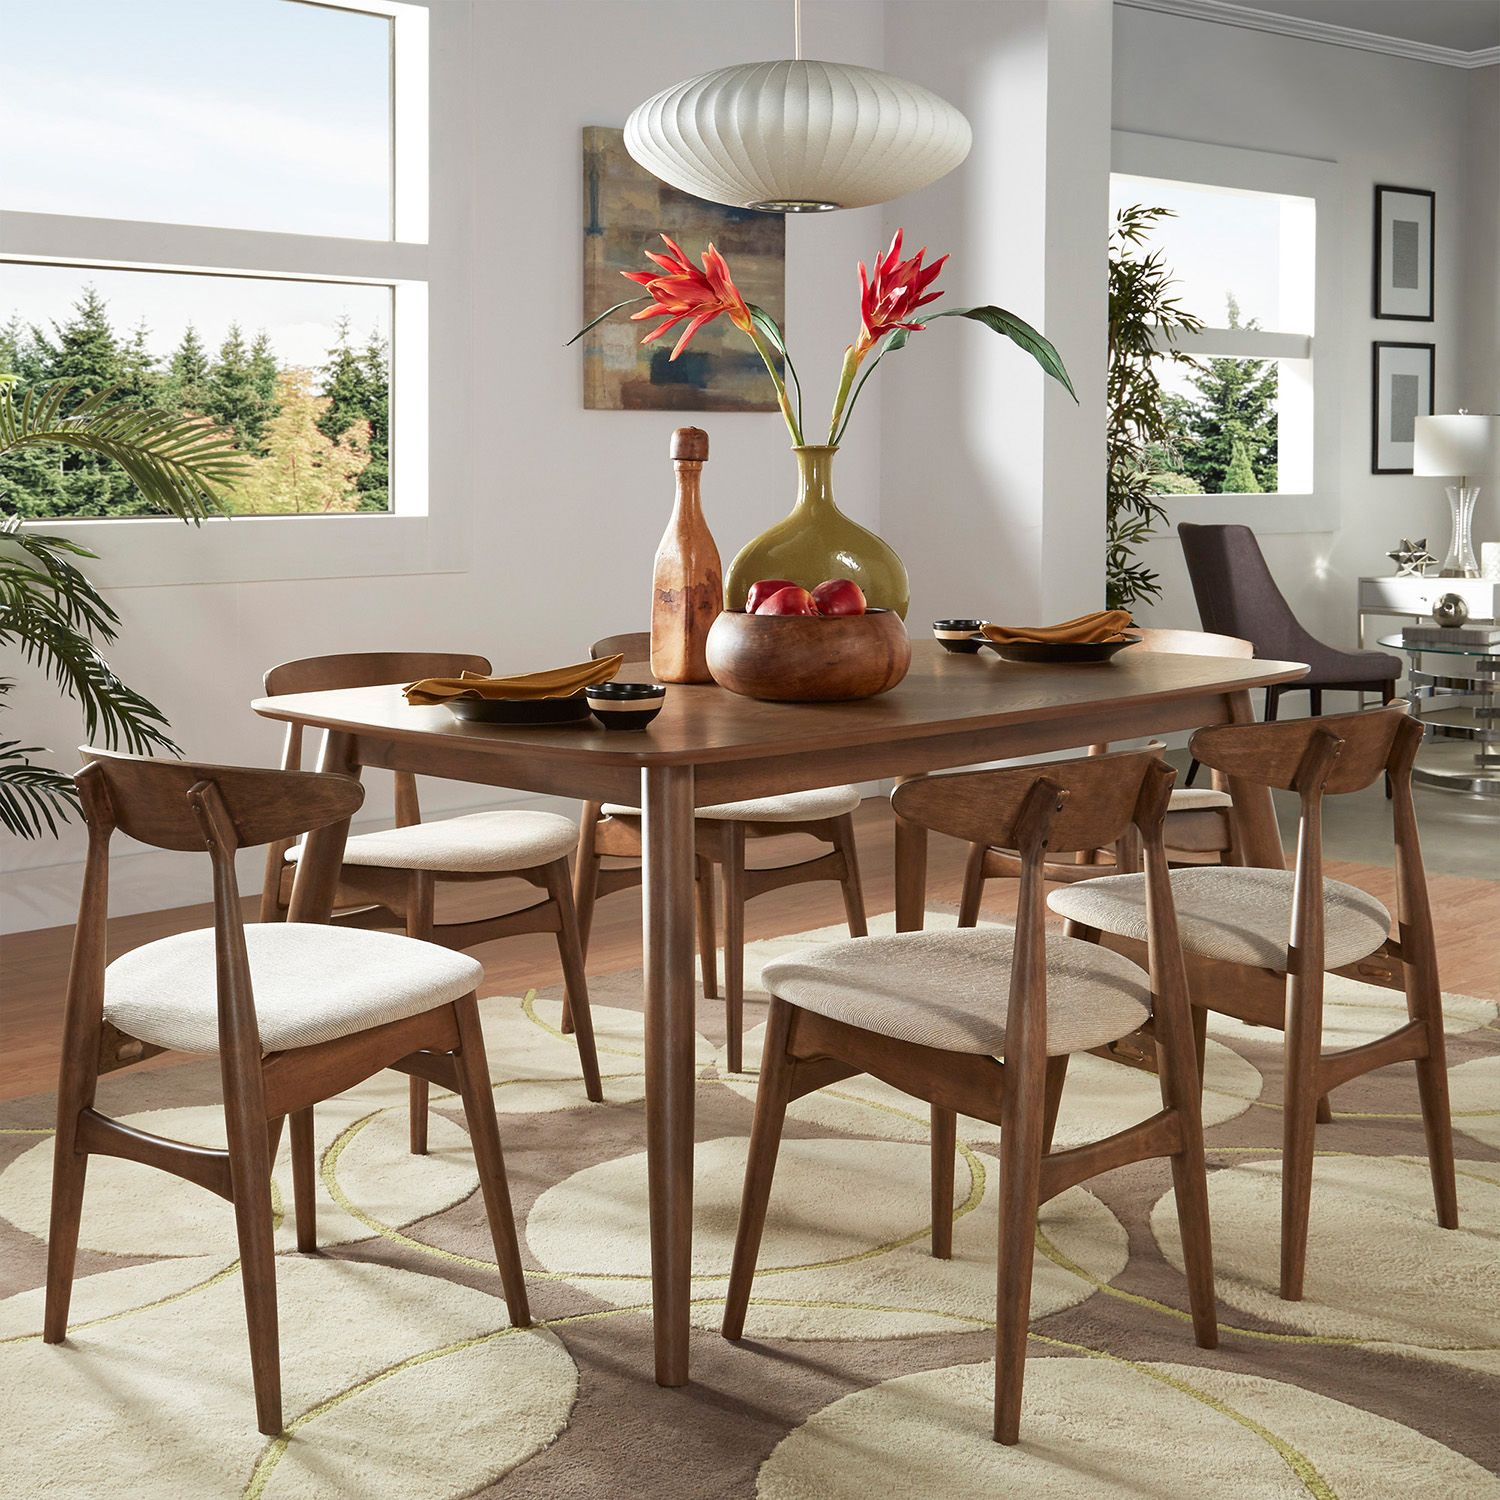 HomeVance Andersen Long Dining Table U0026 Chair 7 Piece Set